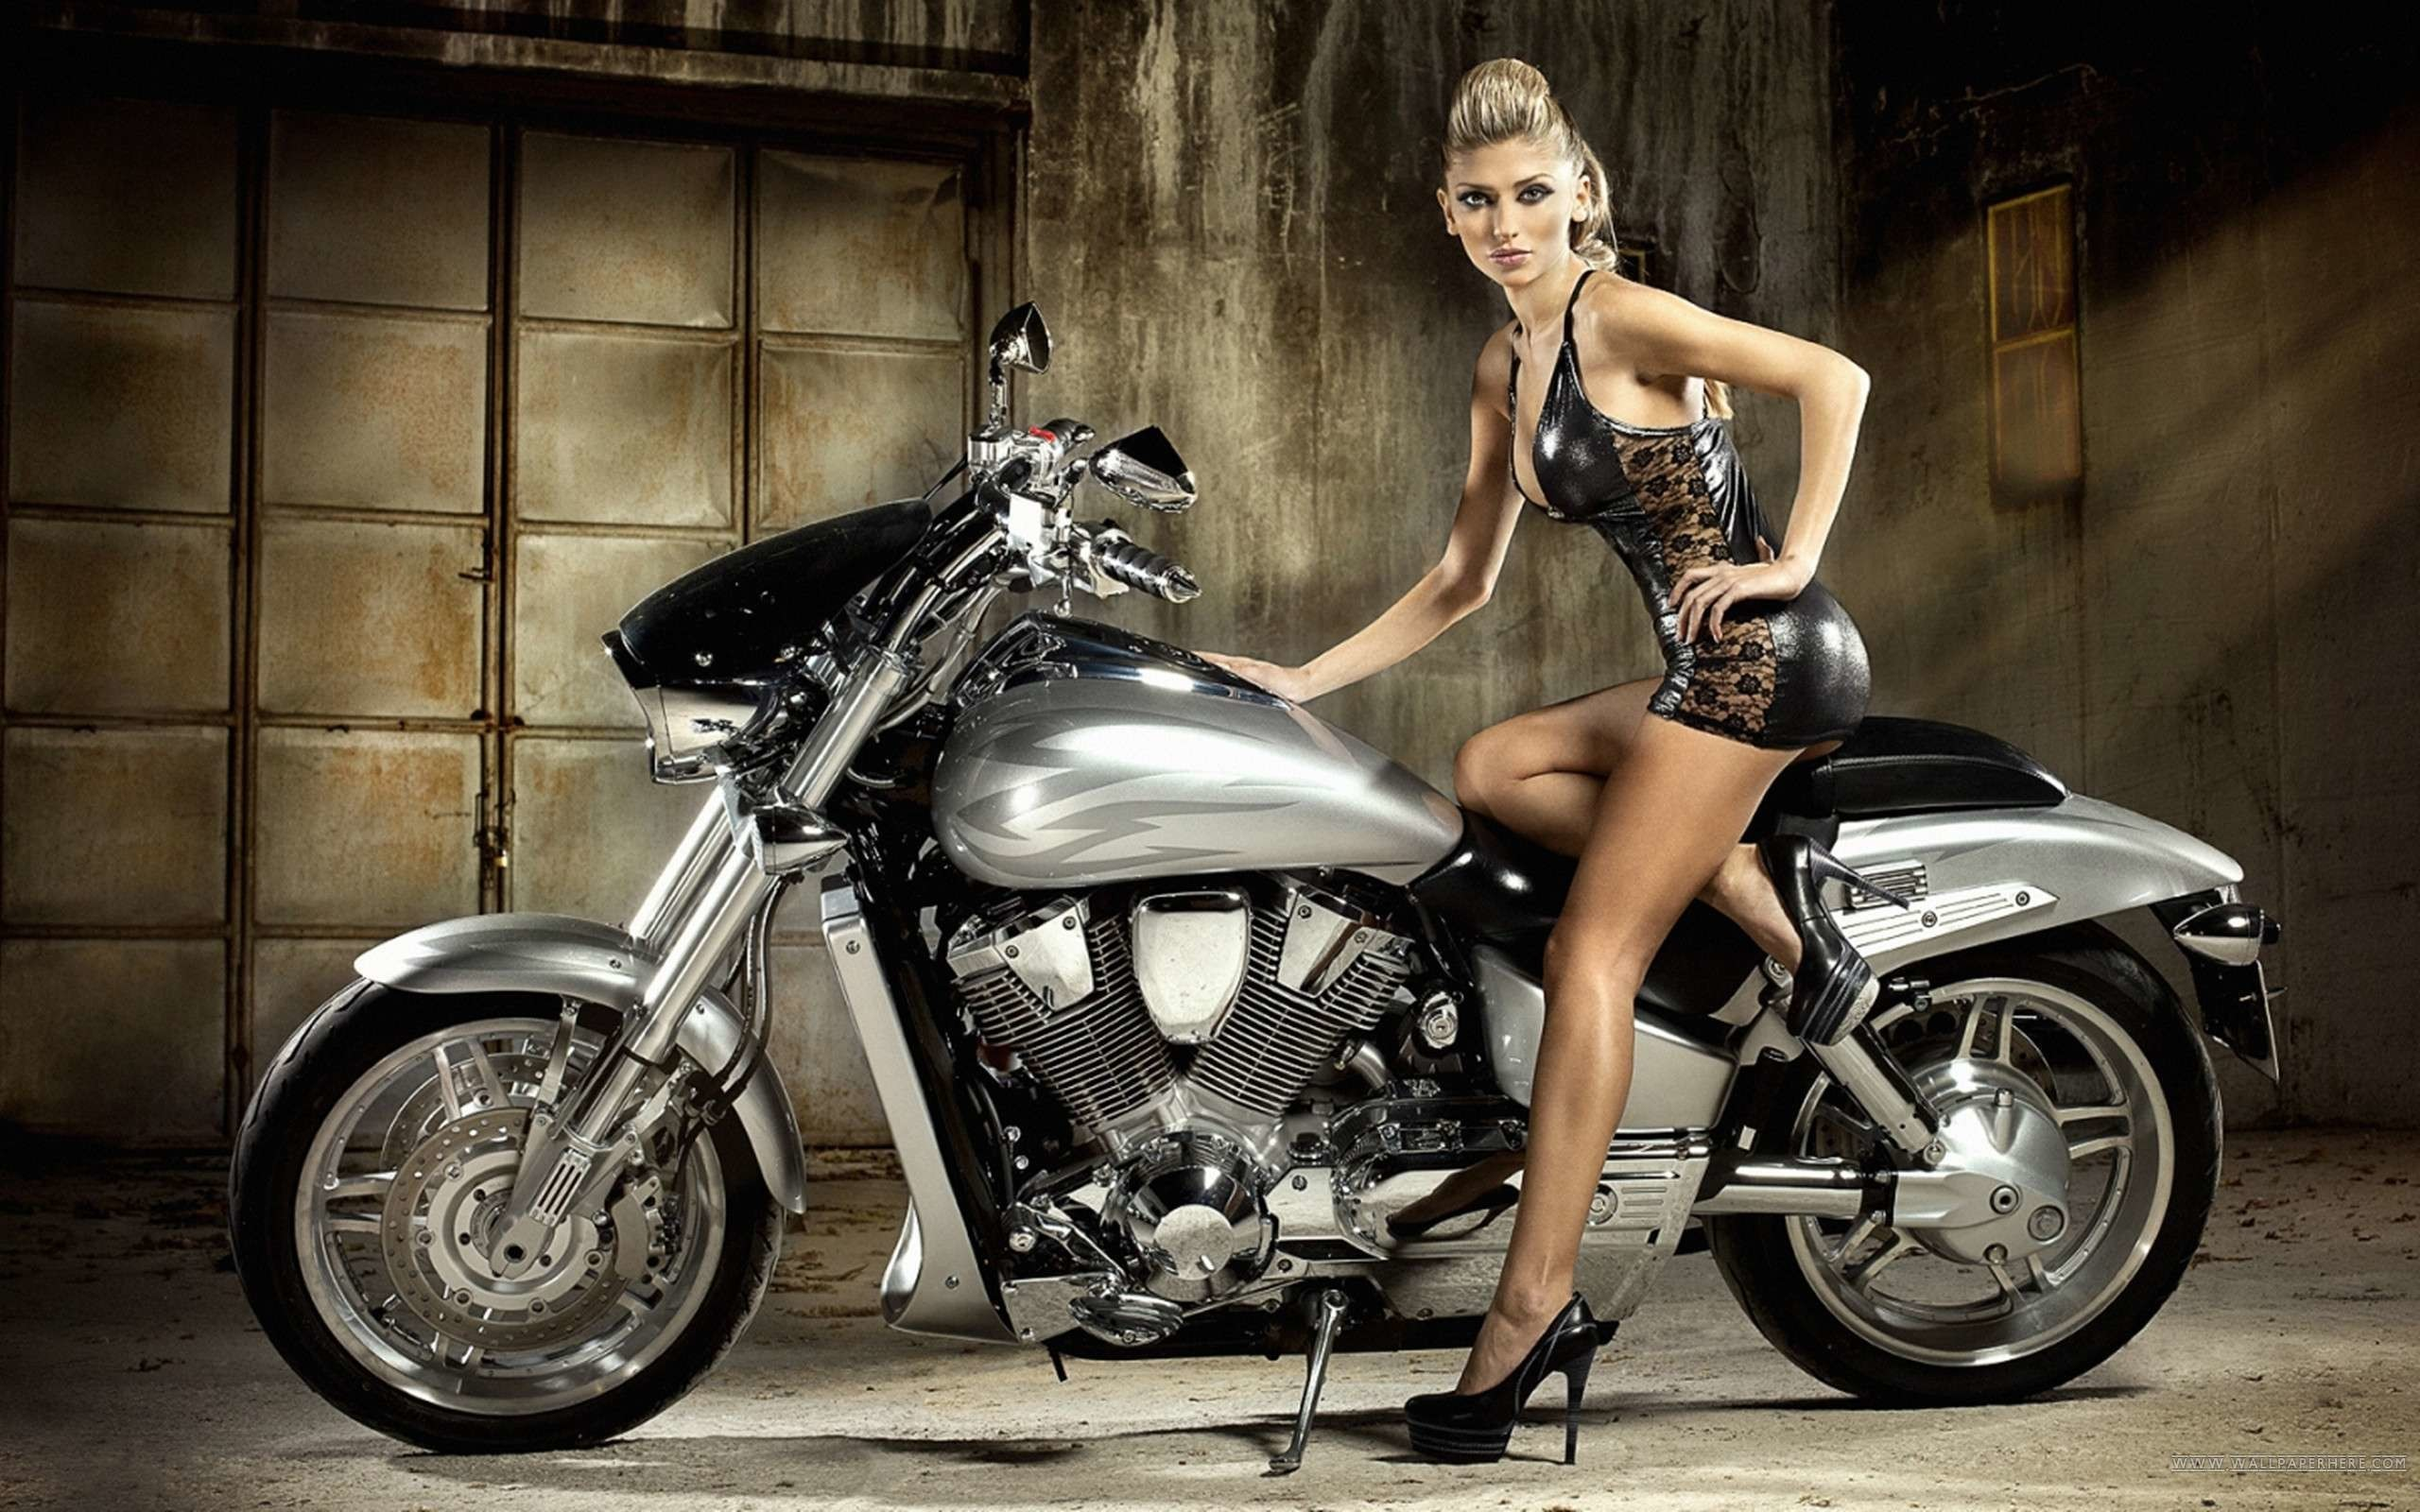 Motorcycle Girls Wallpapers 74 Images